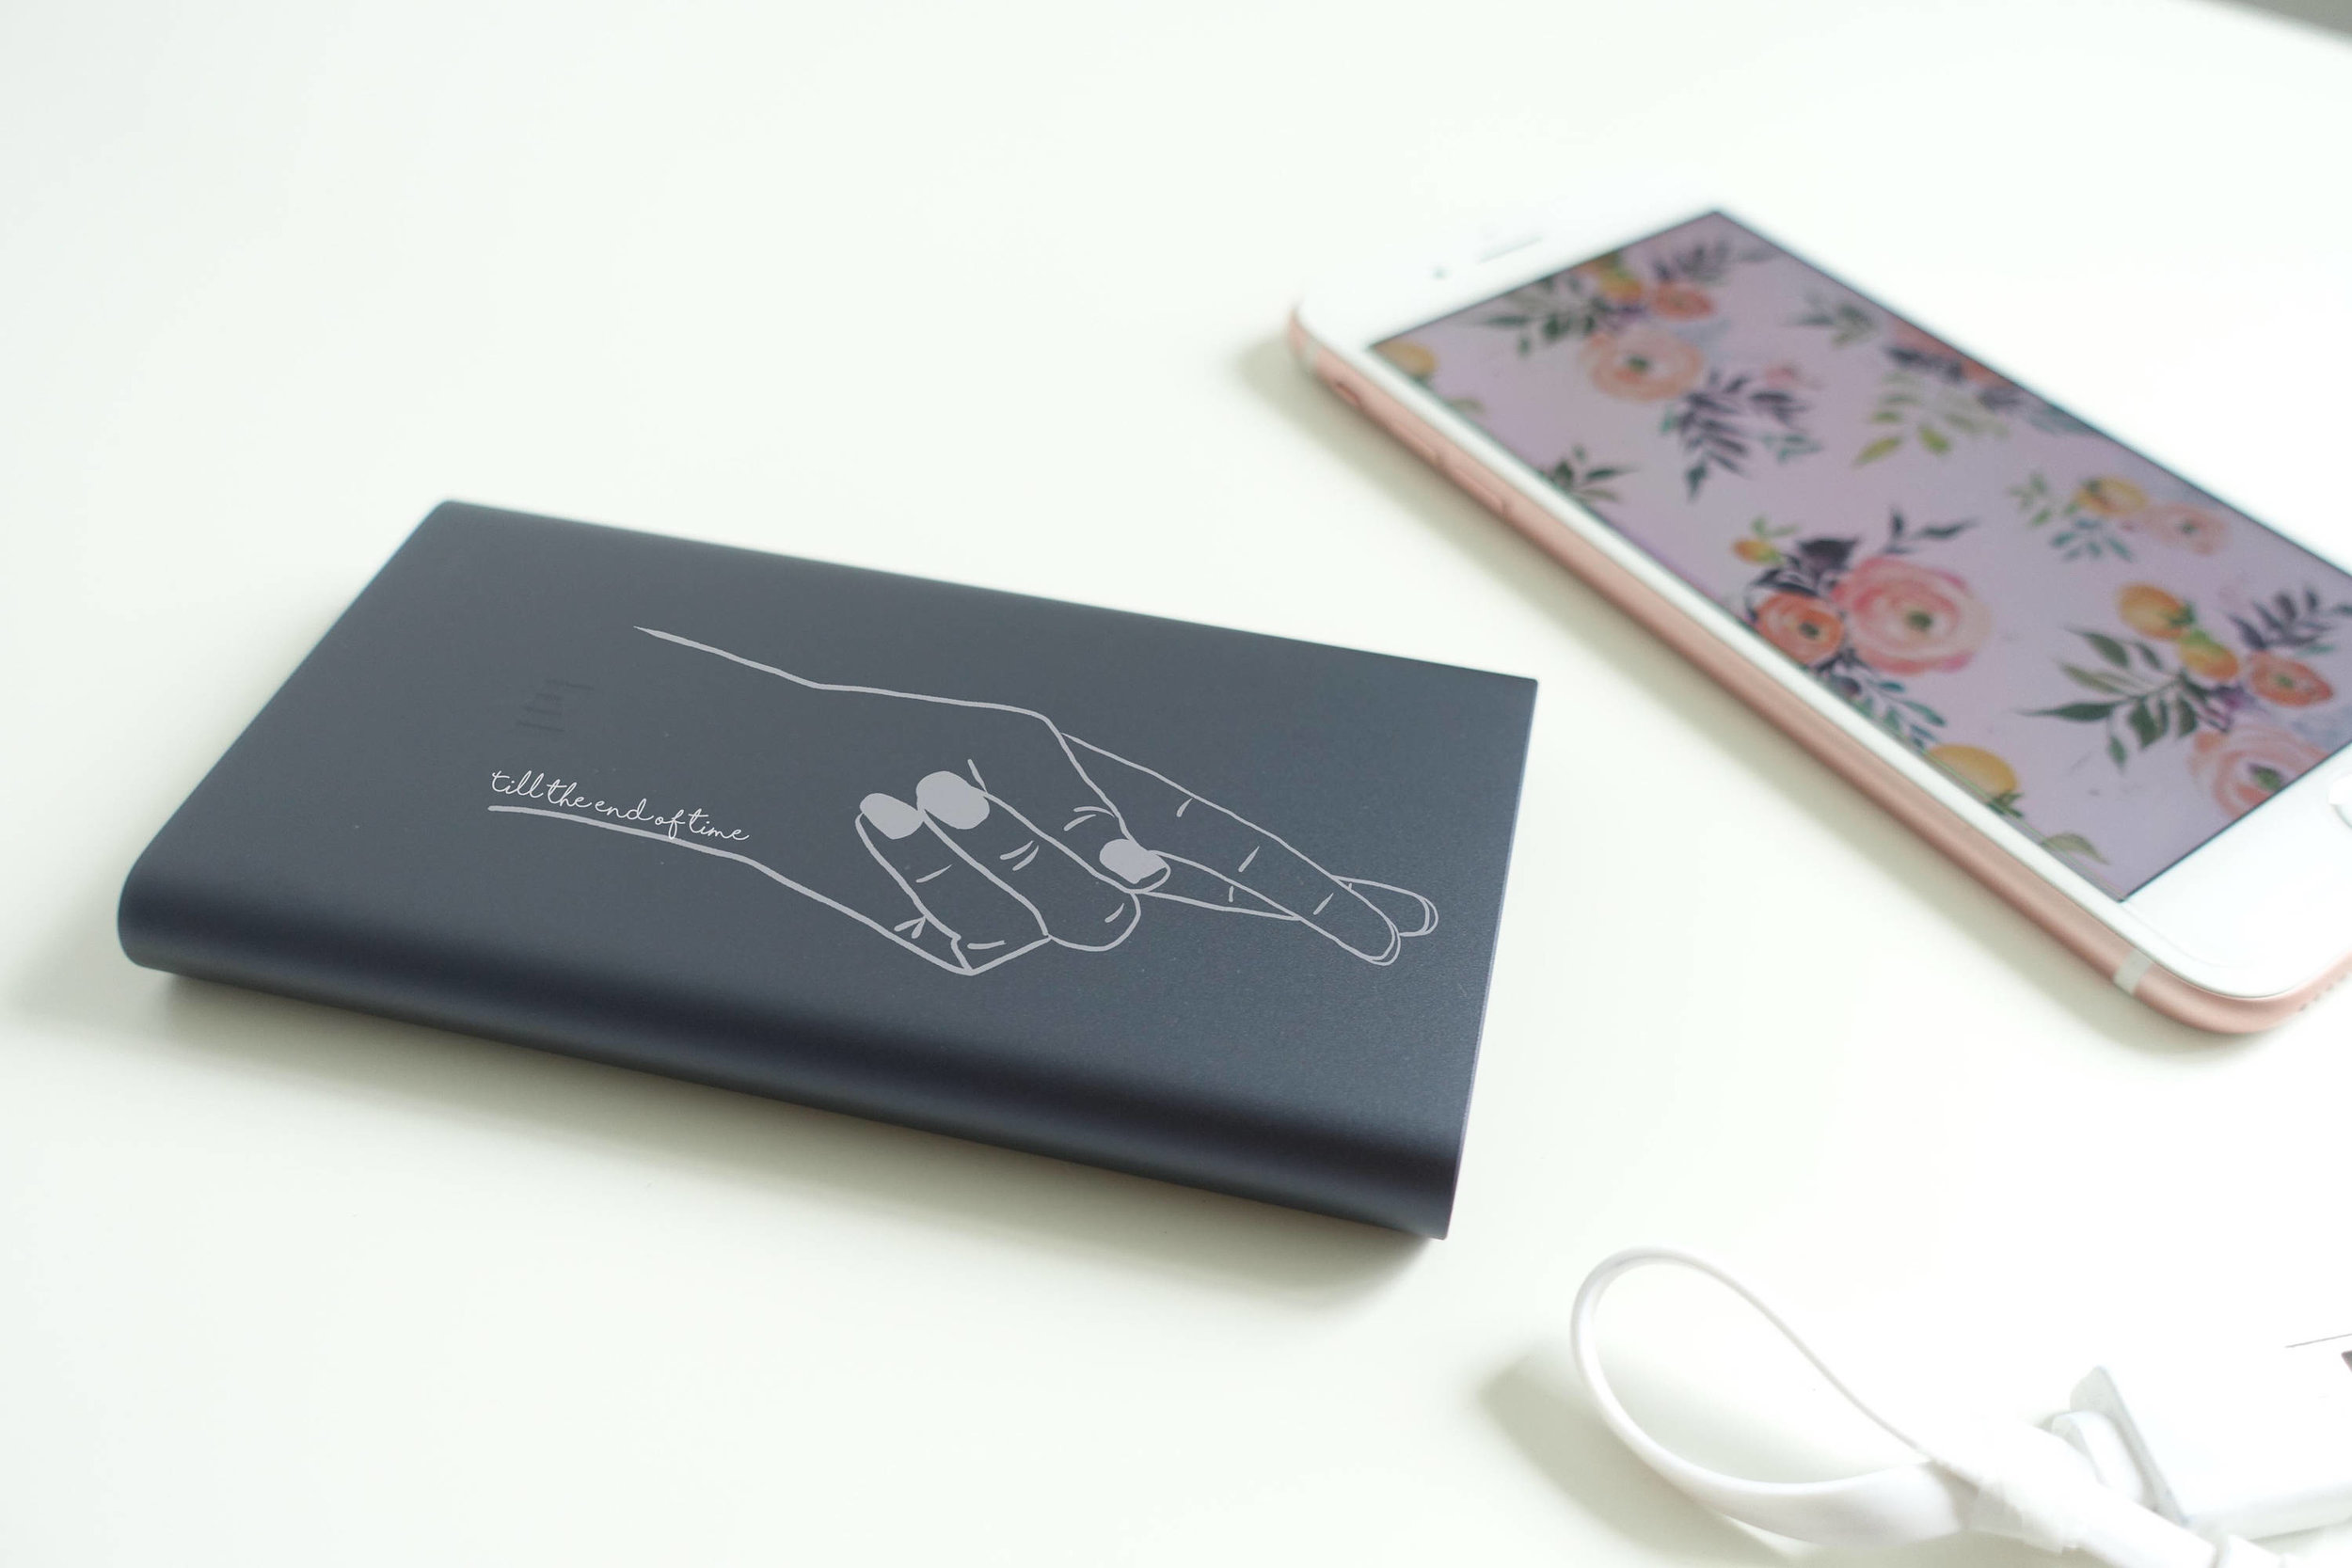 Personalized Fingers Crossed Power Bank by Metalphorically